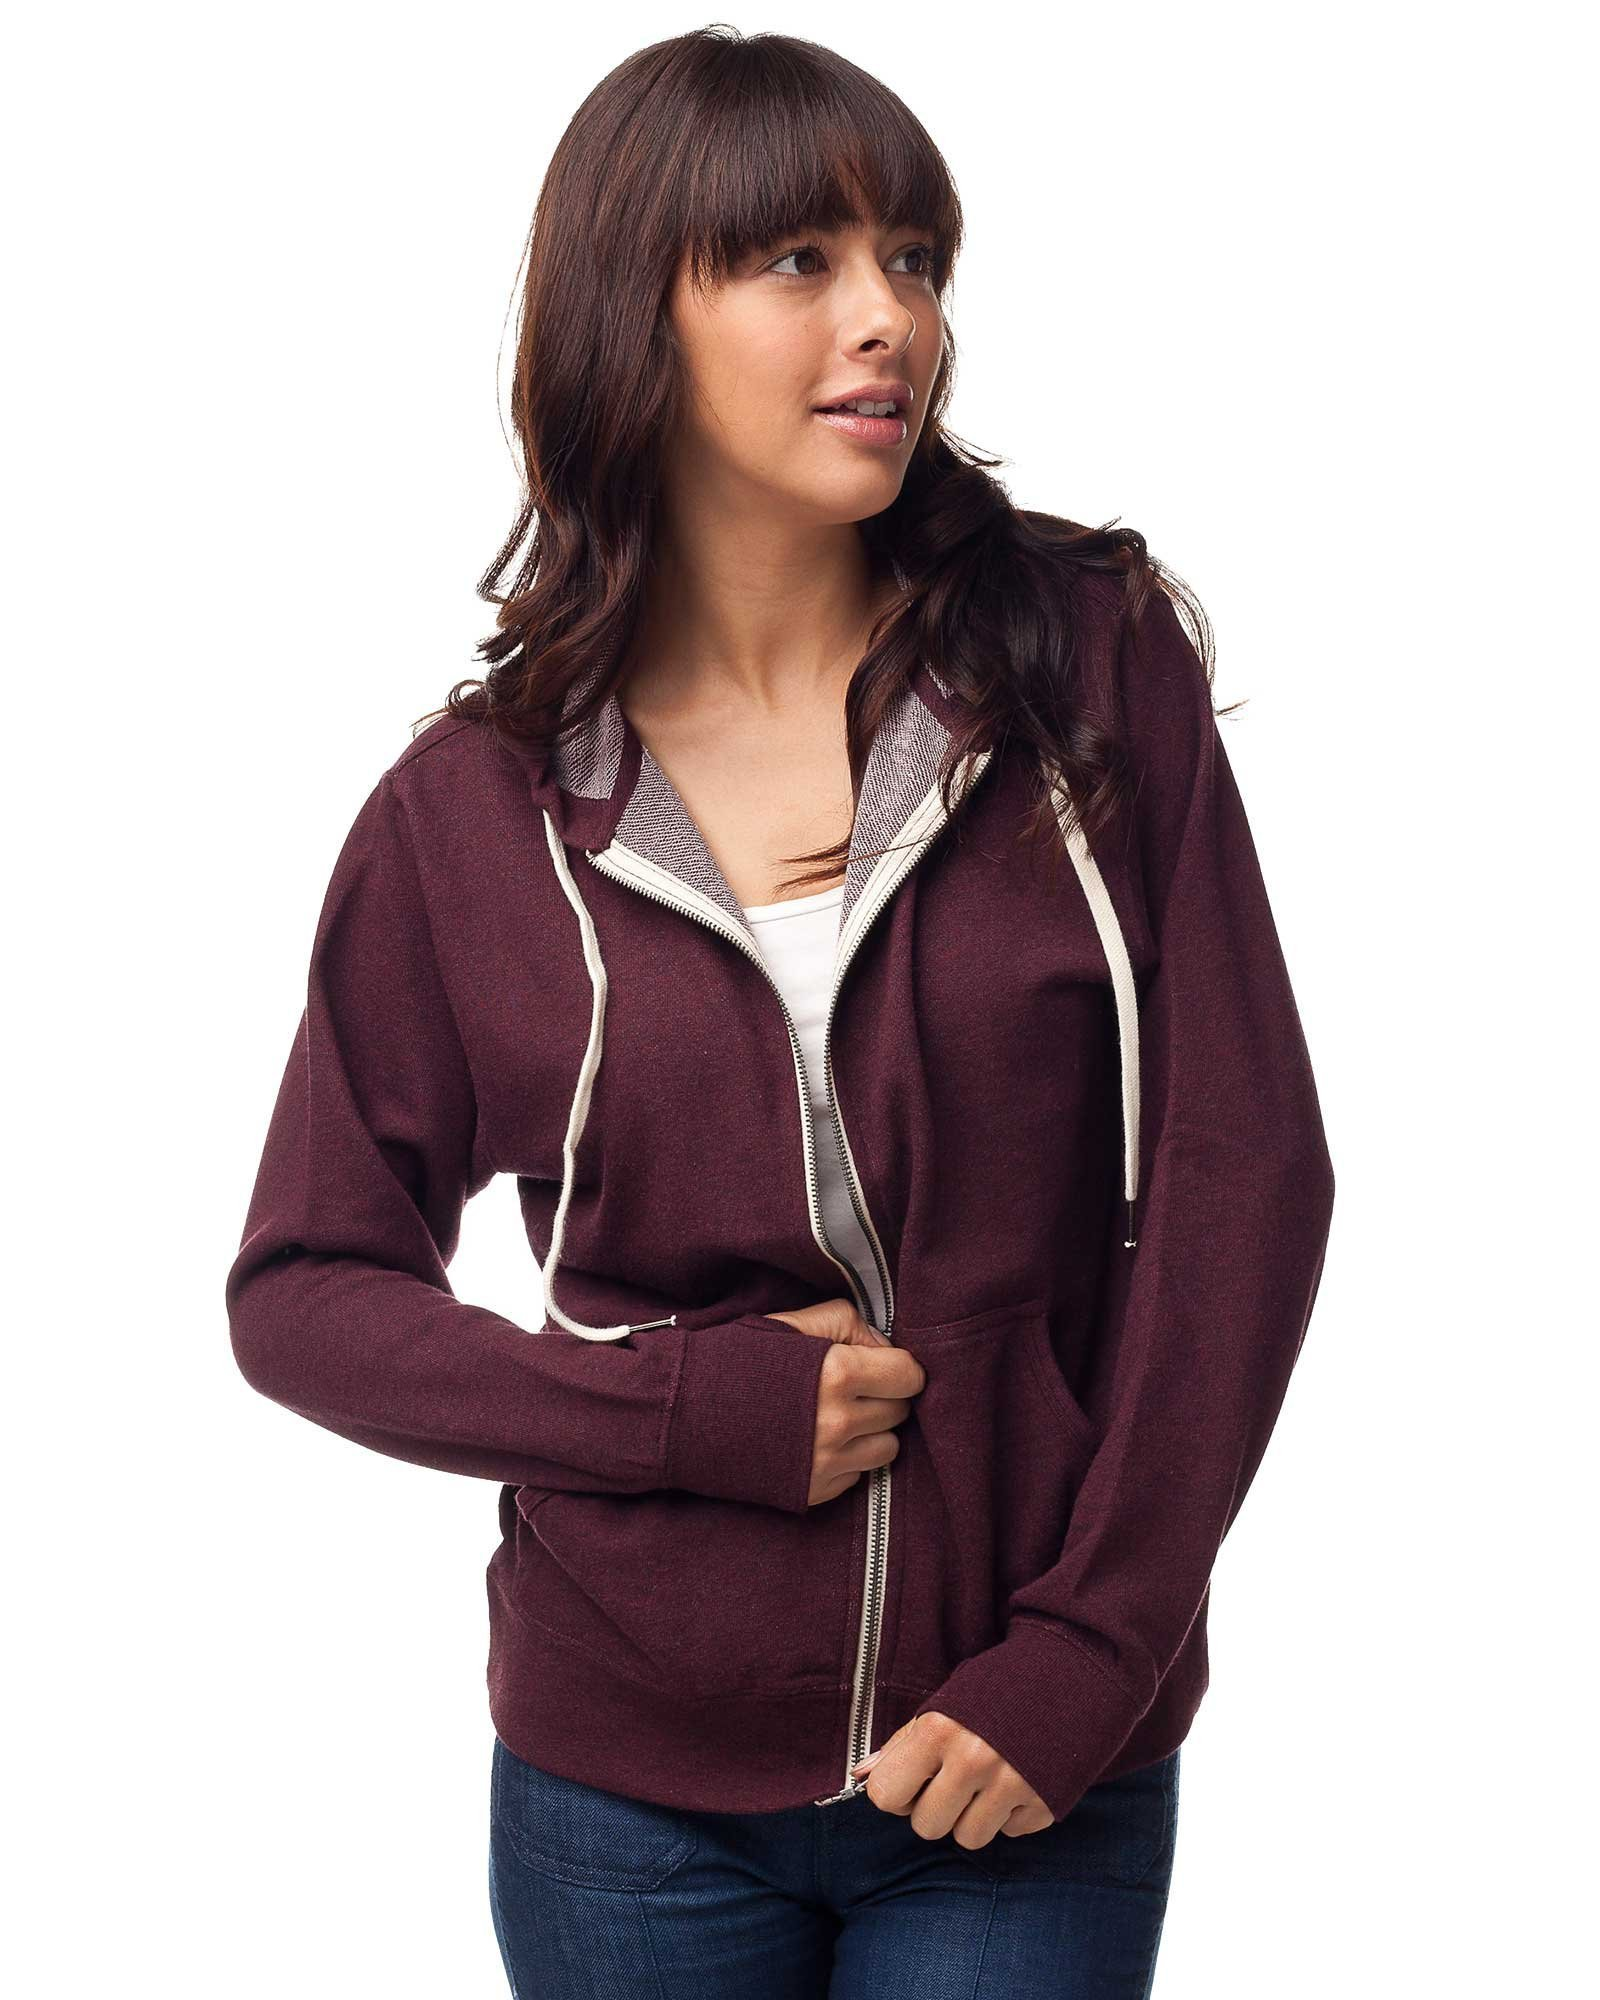 Global Blank Slim Fit French Terry Lightweight Zip Up Hoodie for Women and Men XS Burgundy